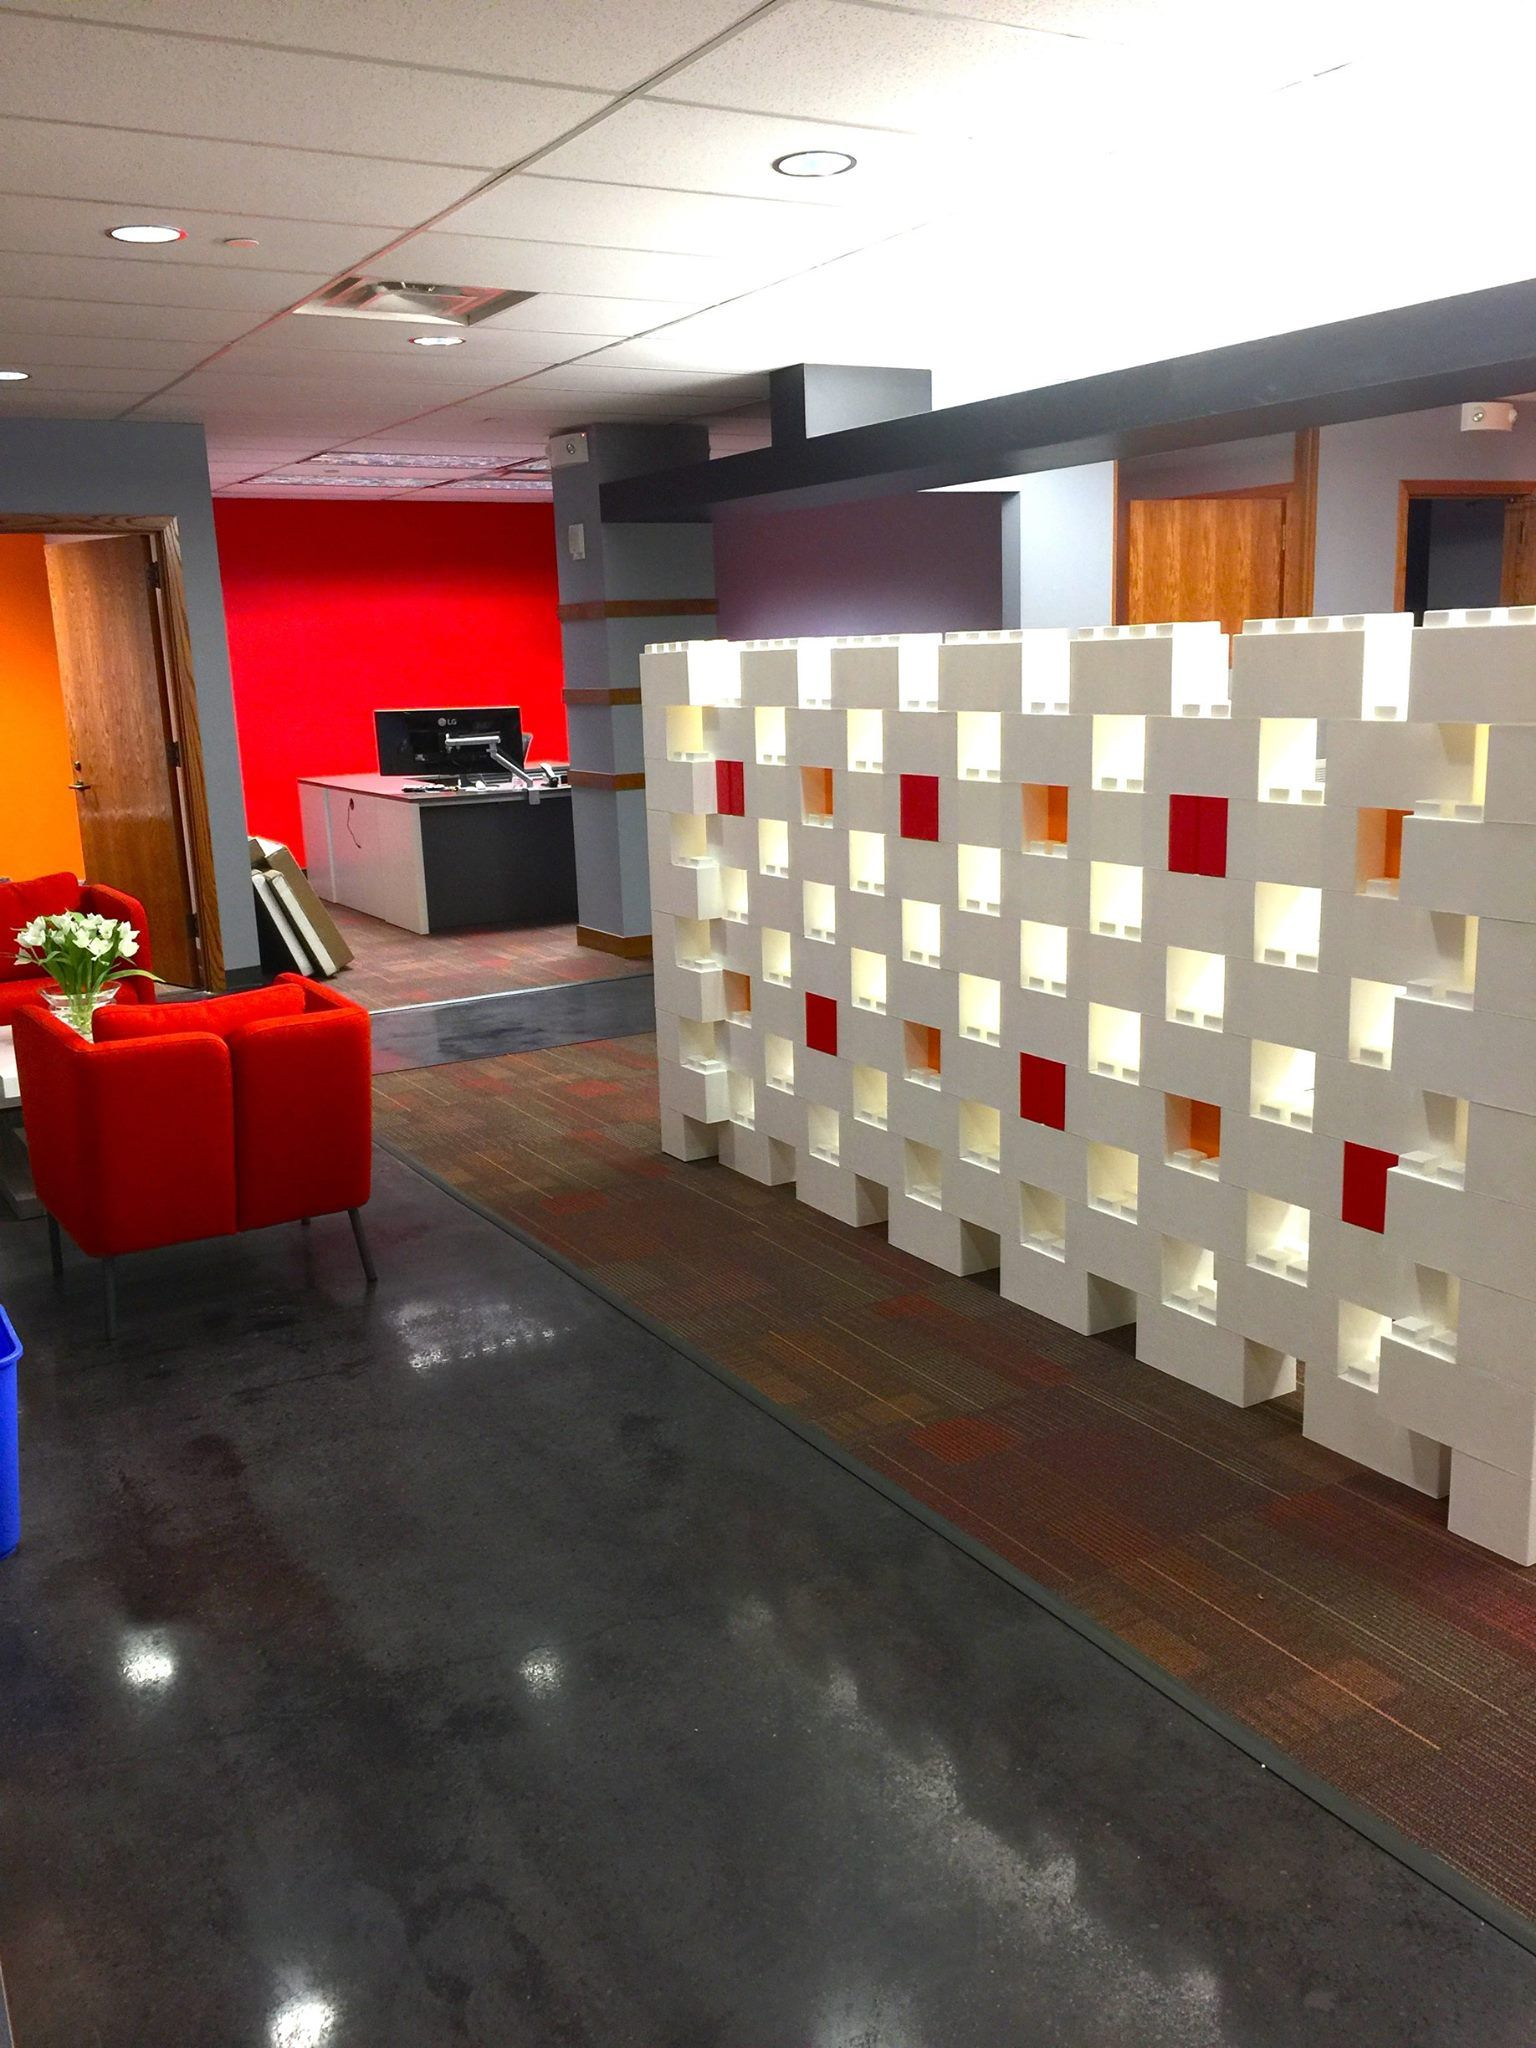 Modular walls and room dividers made from modular building blocks